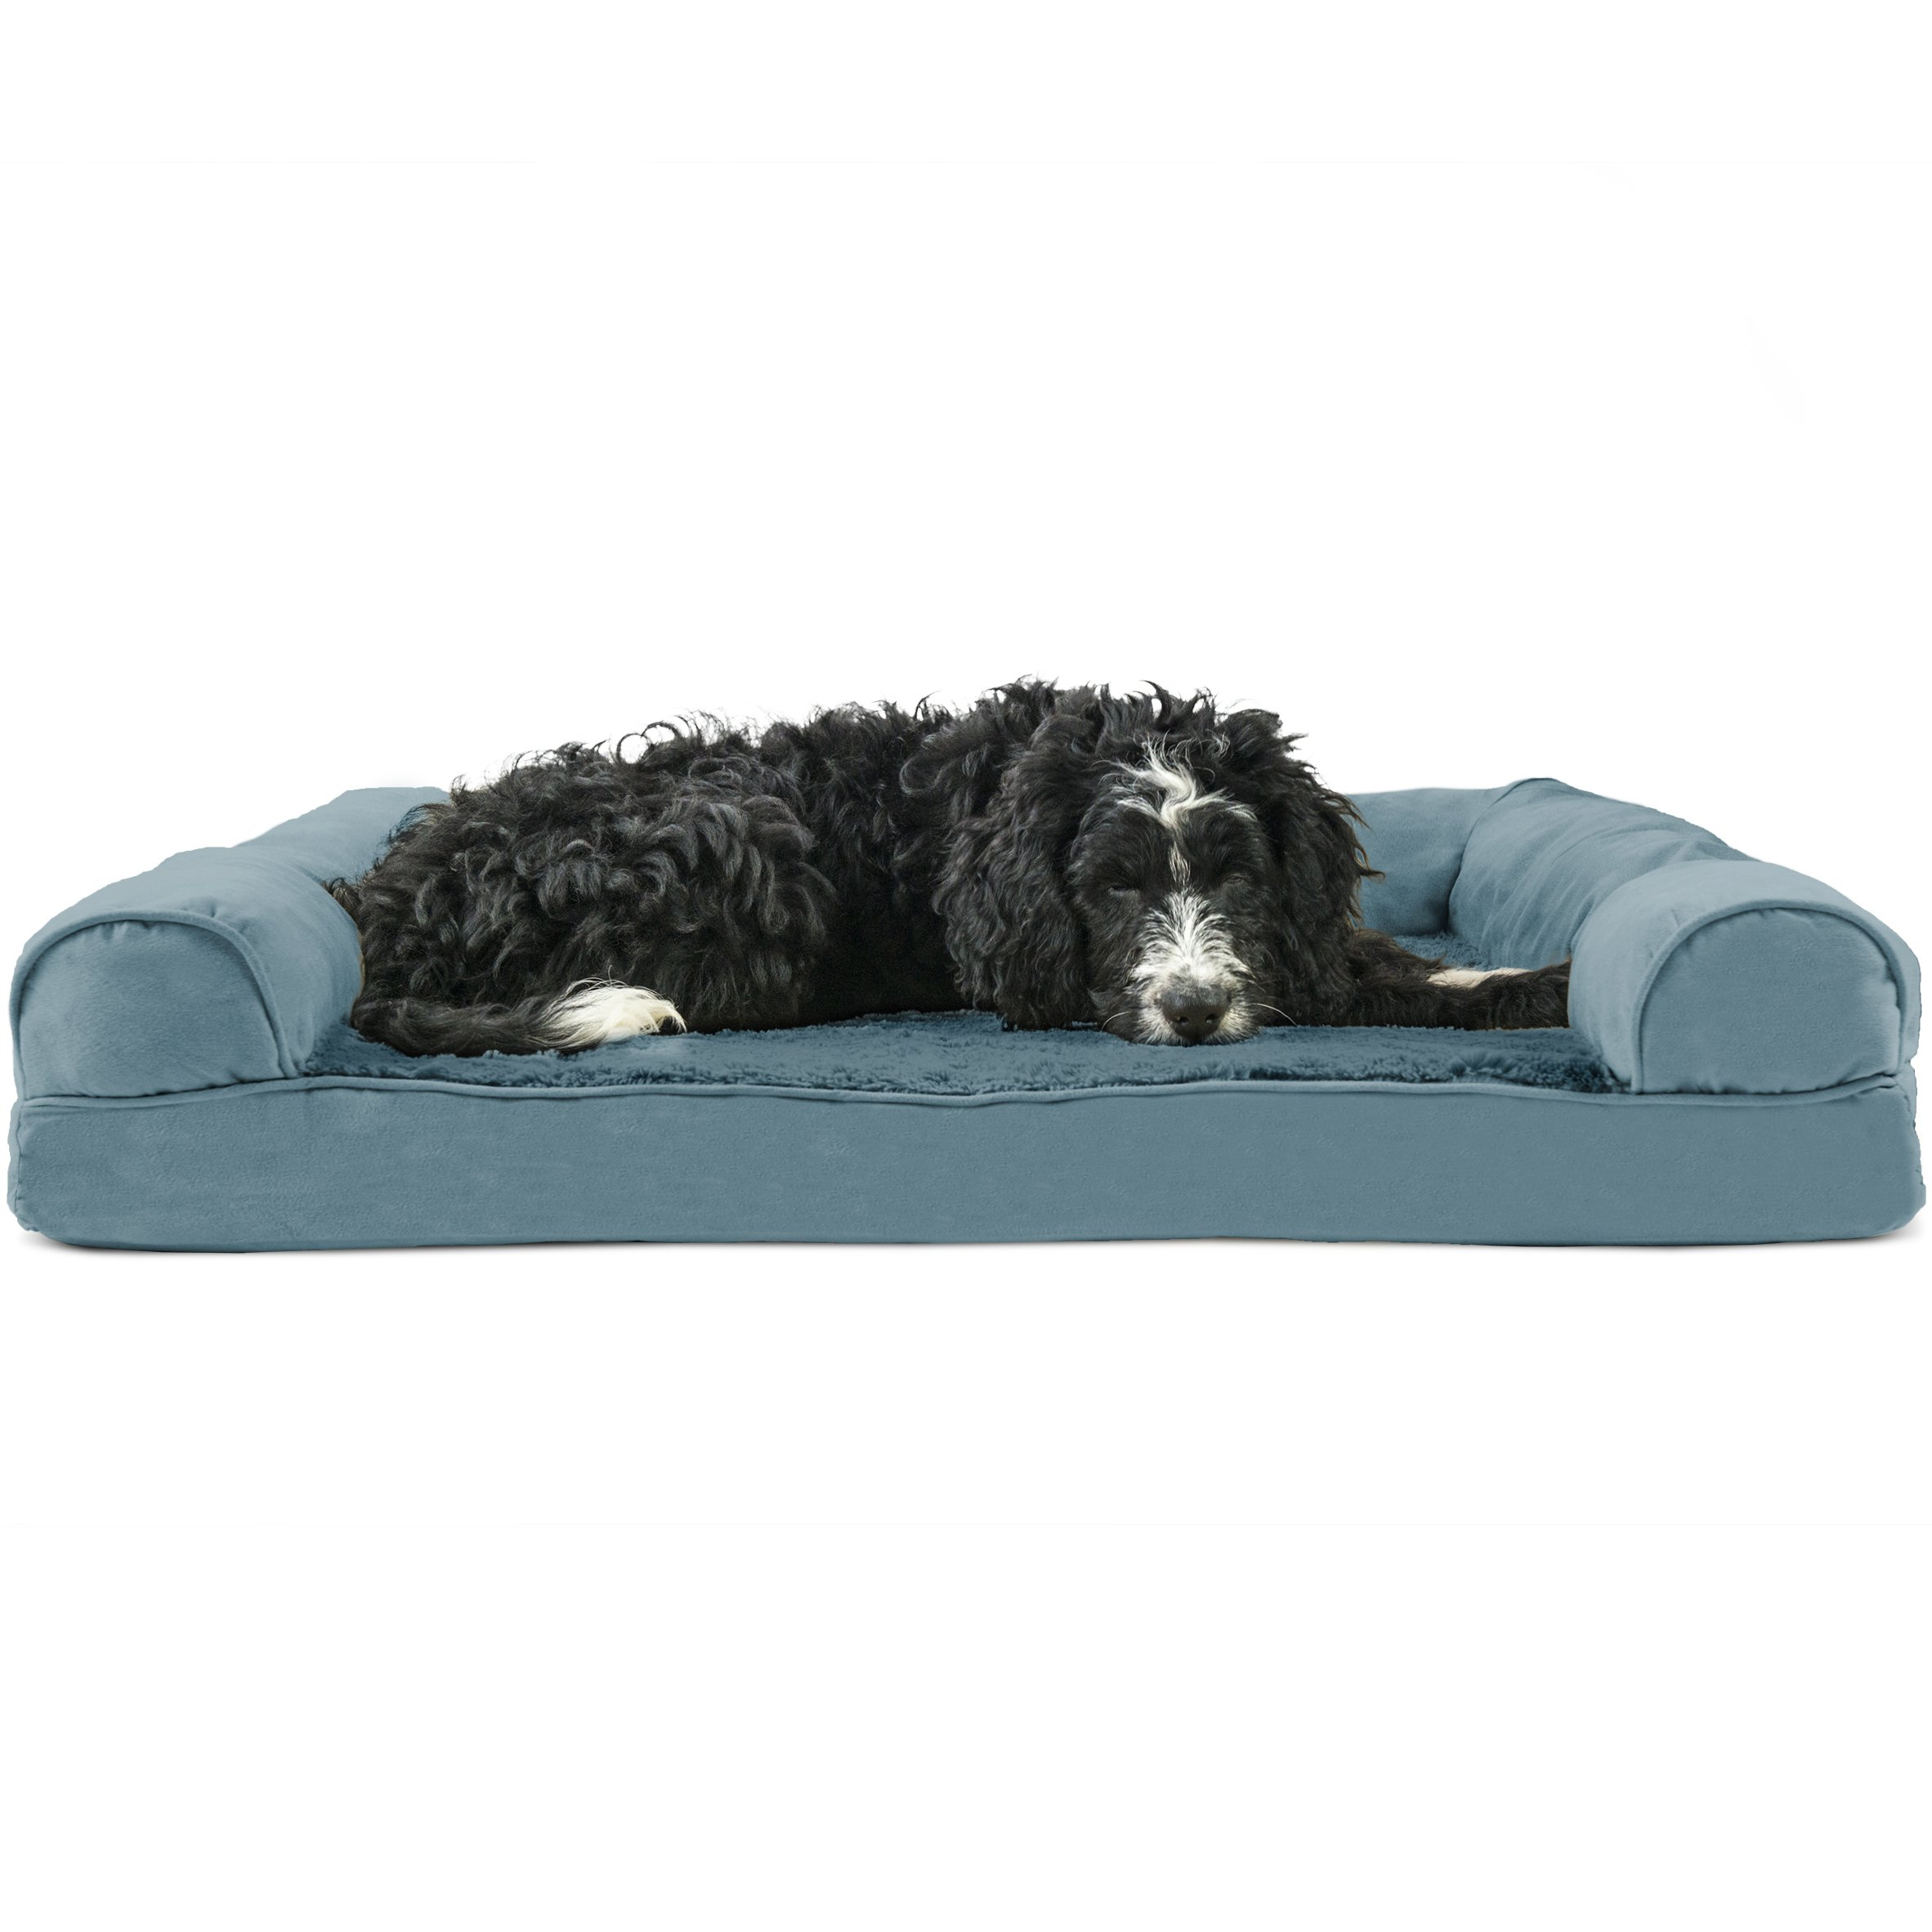 FurHaven Pet Dog Bed | Orthopedic Plush & Suede Sofa-Style Couch Pet Bed for Dogs & Cats, Deep Pool, Large